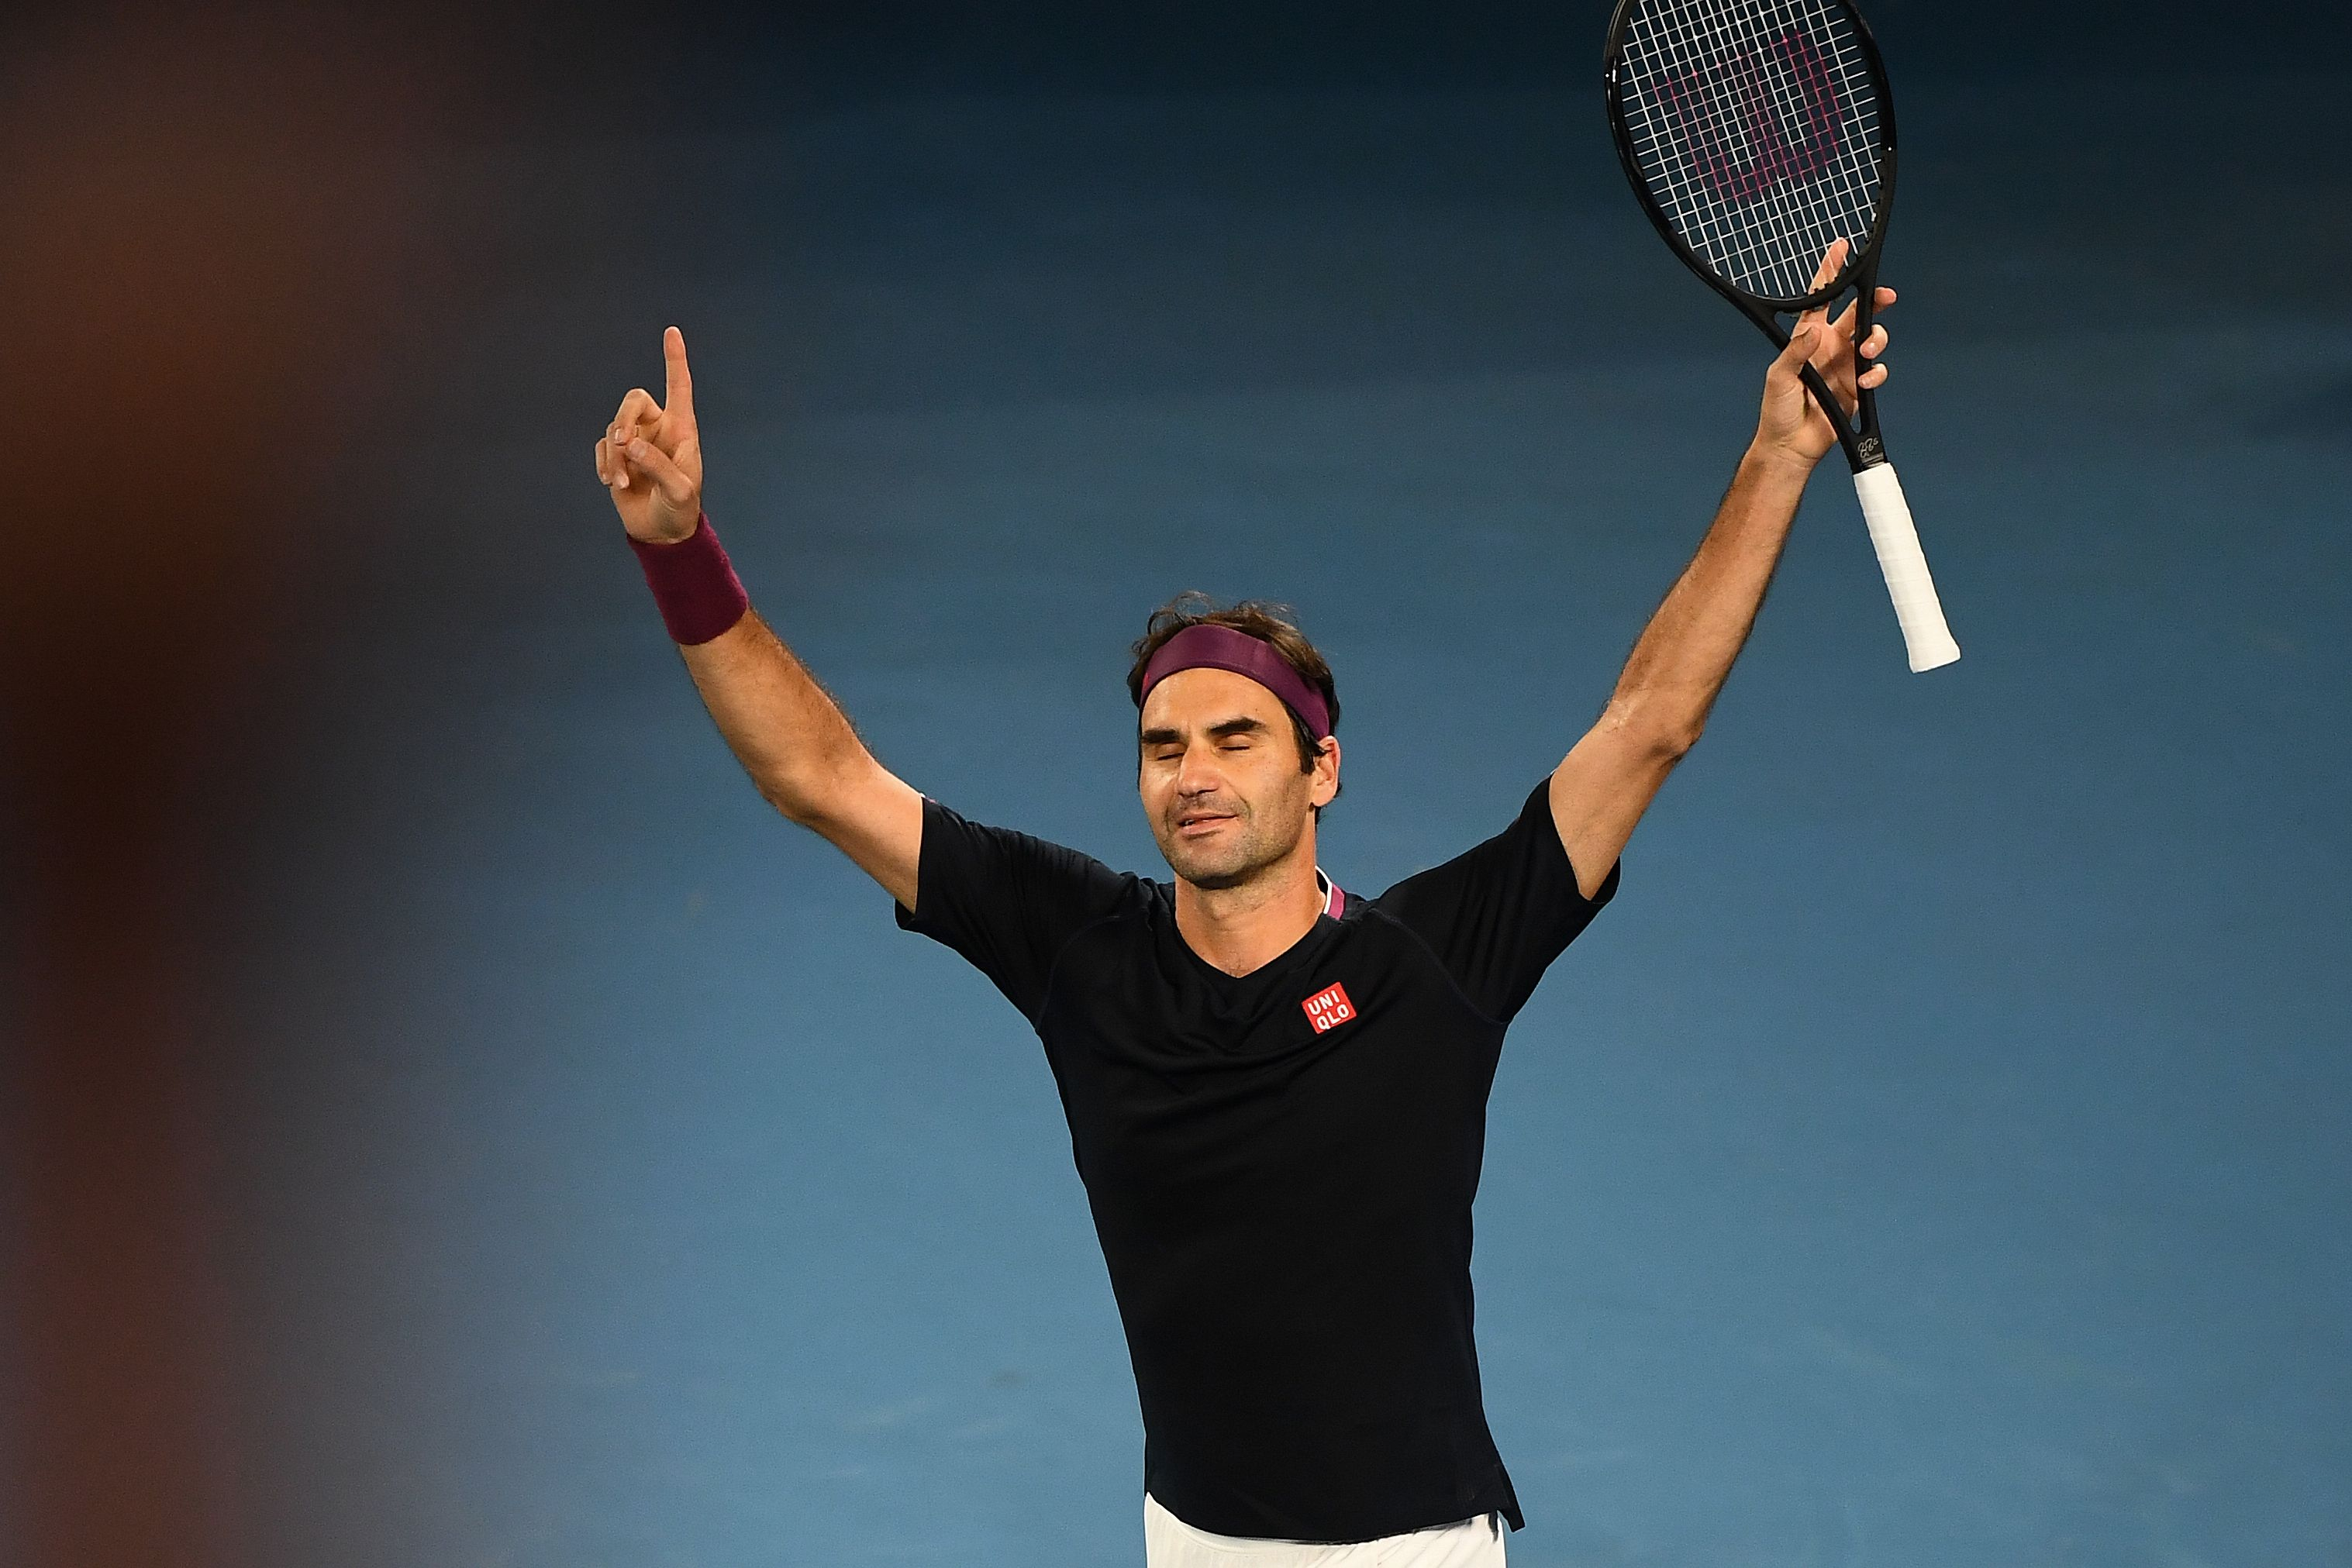 Roger Federer is the highest-paid athlete in the world as only two women make top 100